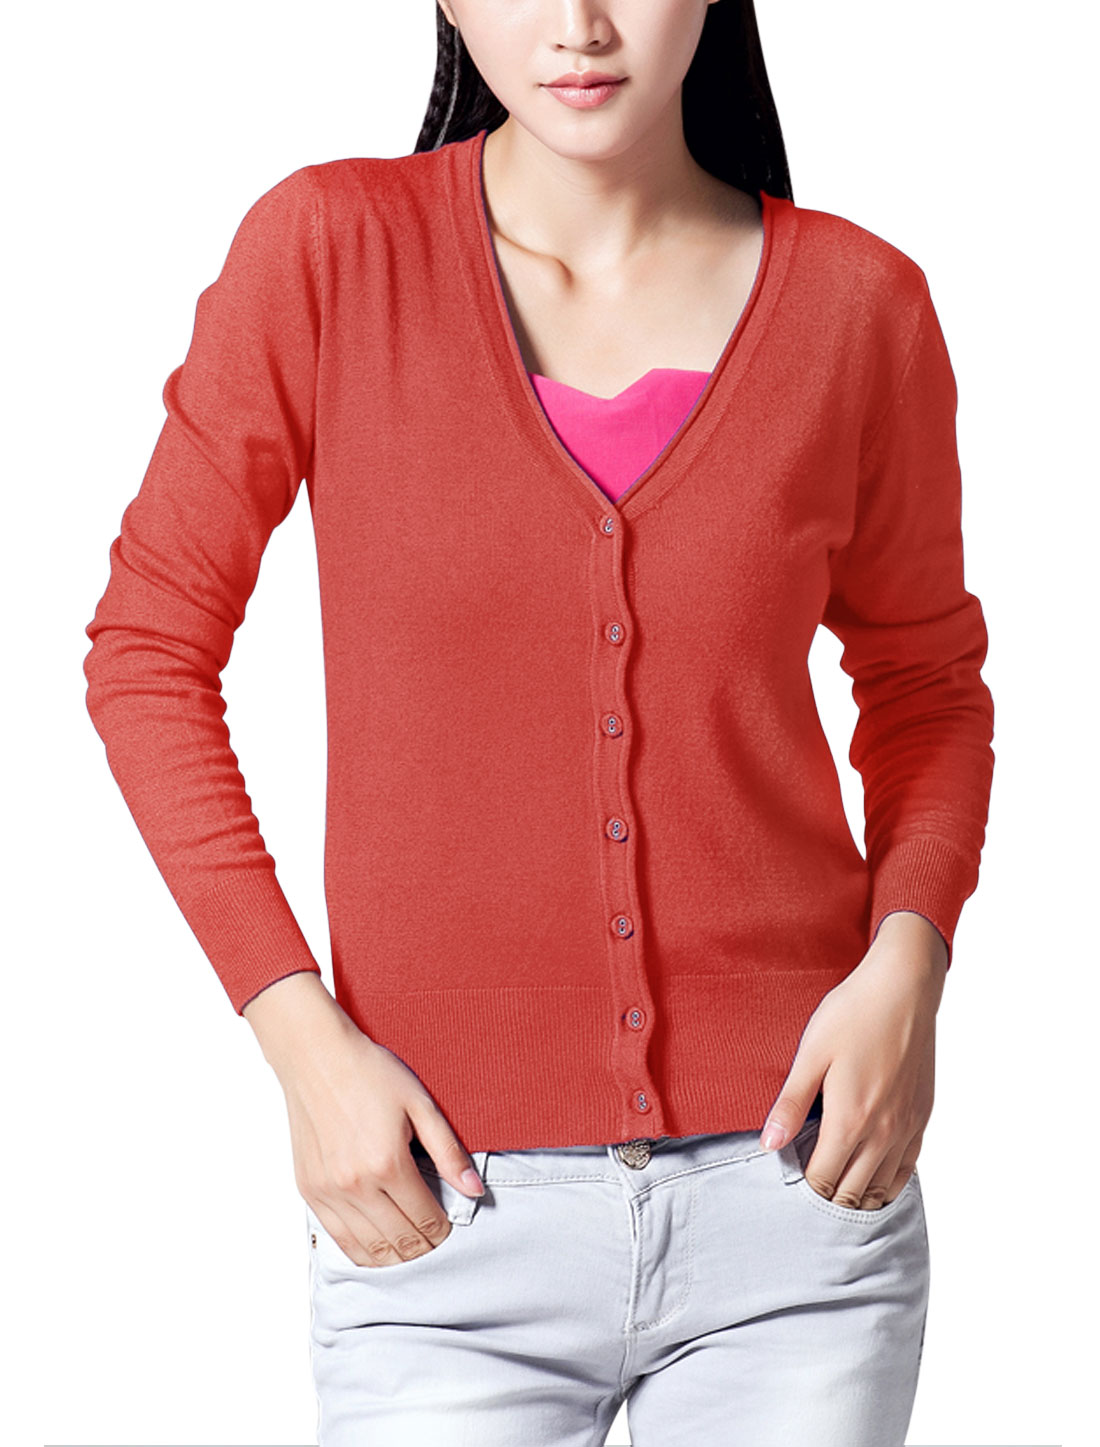 Women V Neckline Elastic Cozy Fit Knit Cardigan Red M